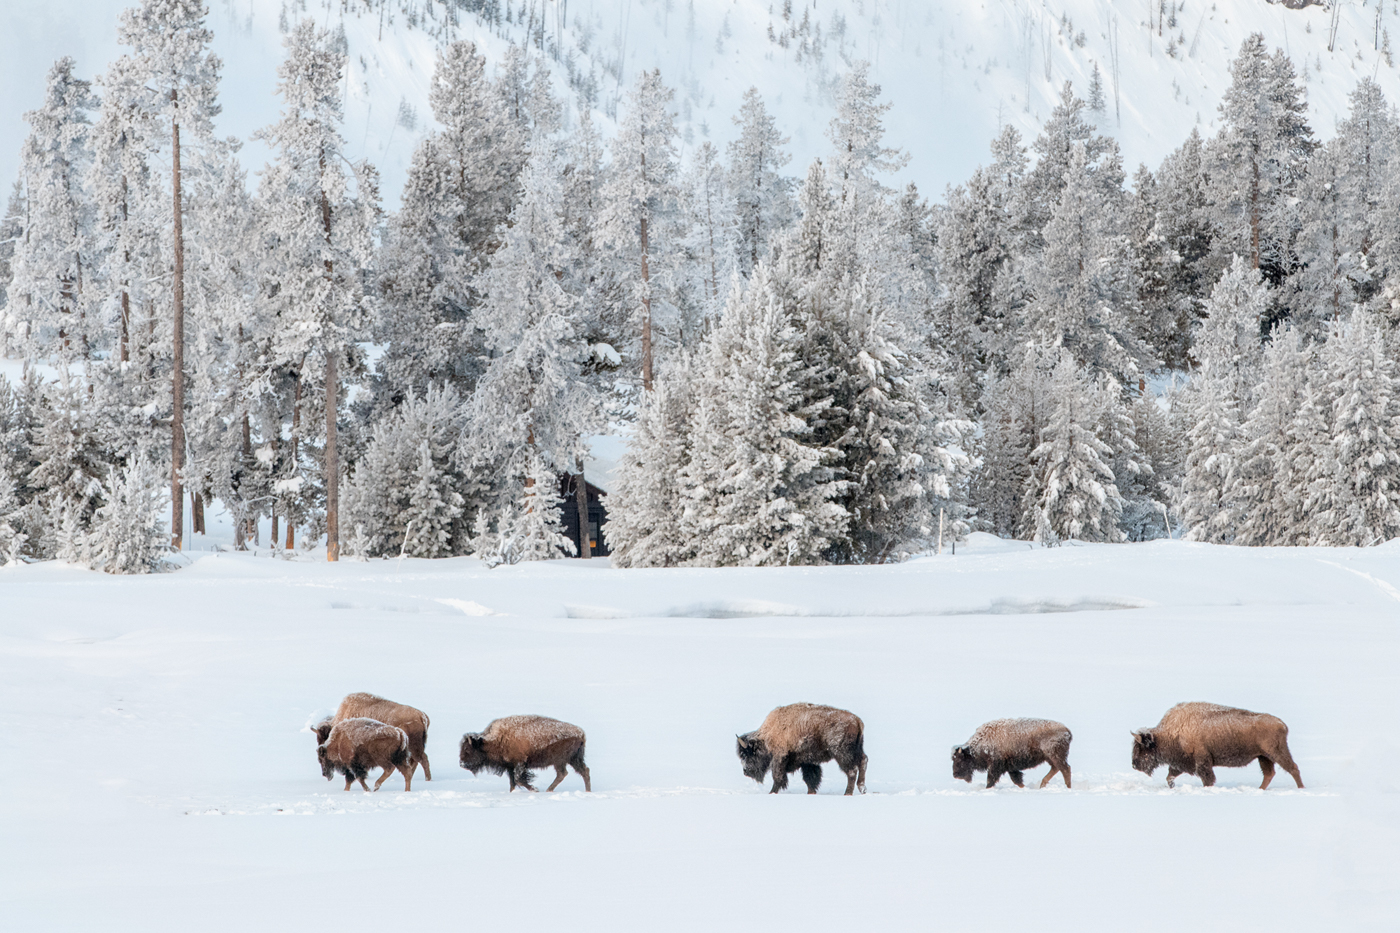 Winter line of bison, Yellowstone National Park, Wyoming